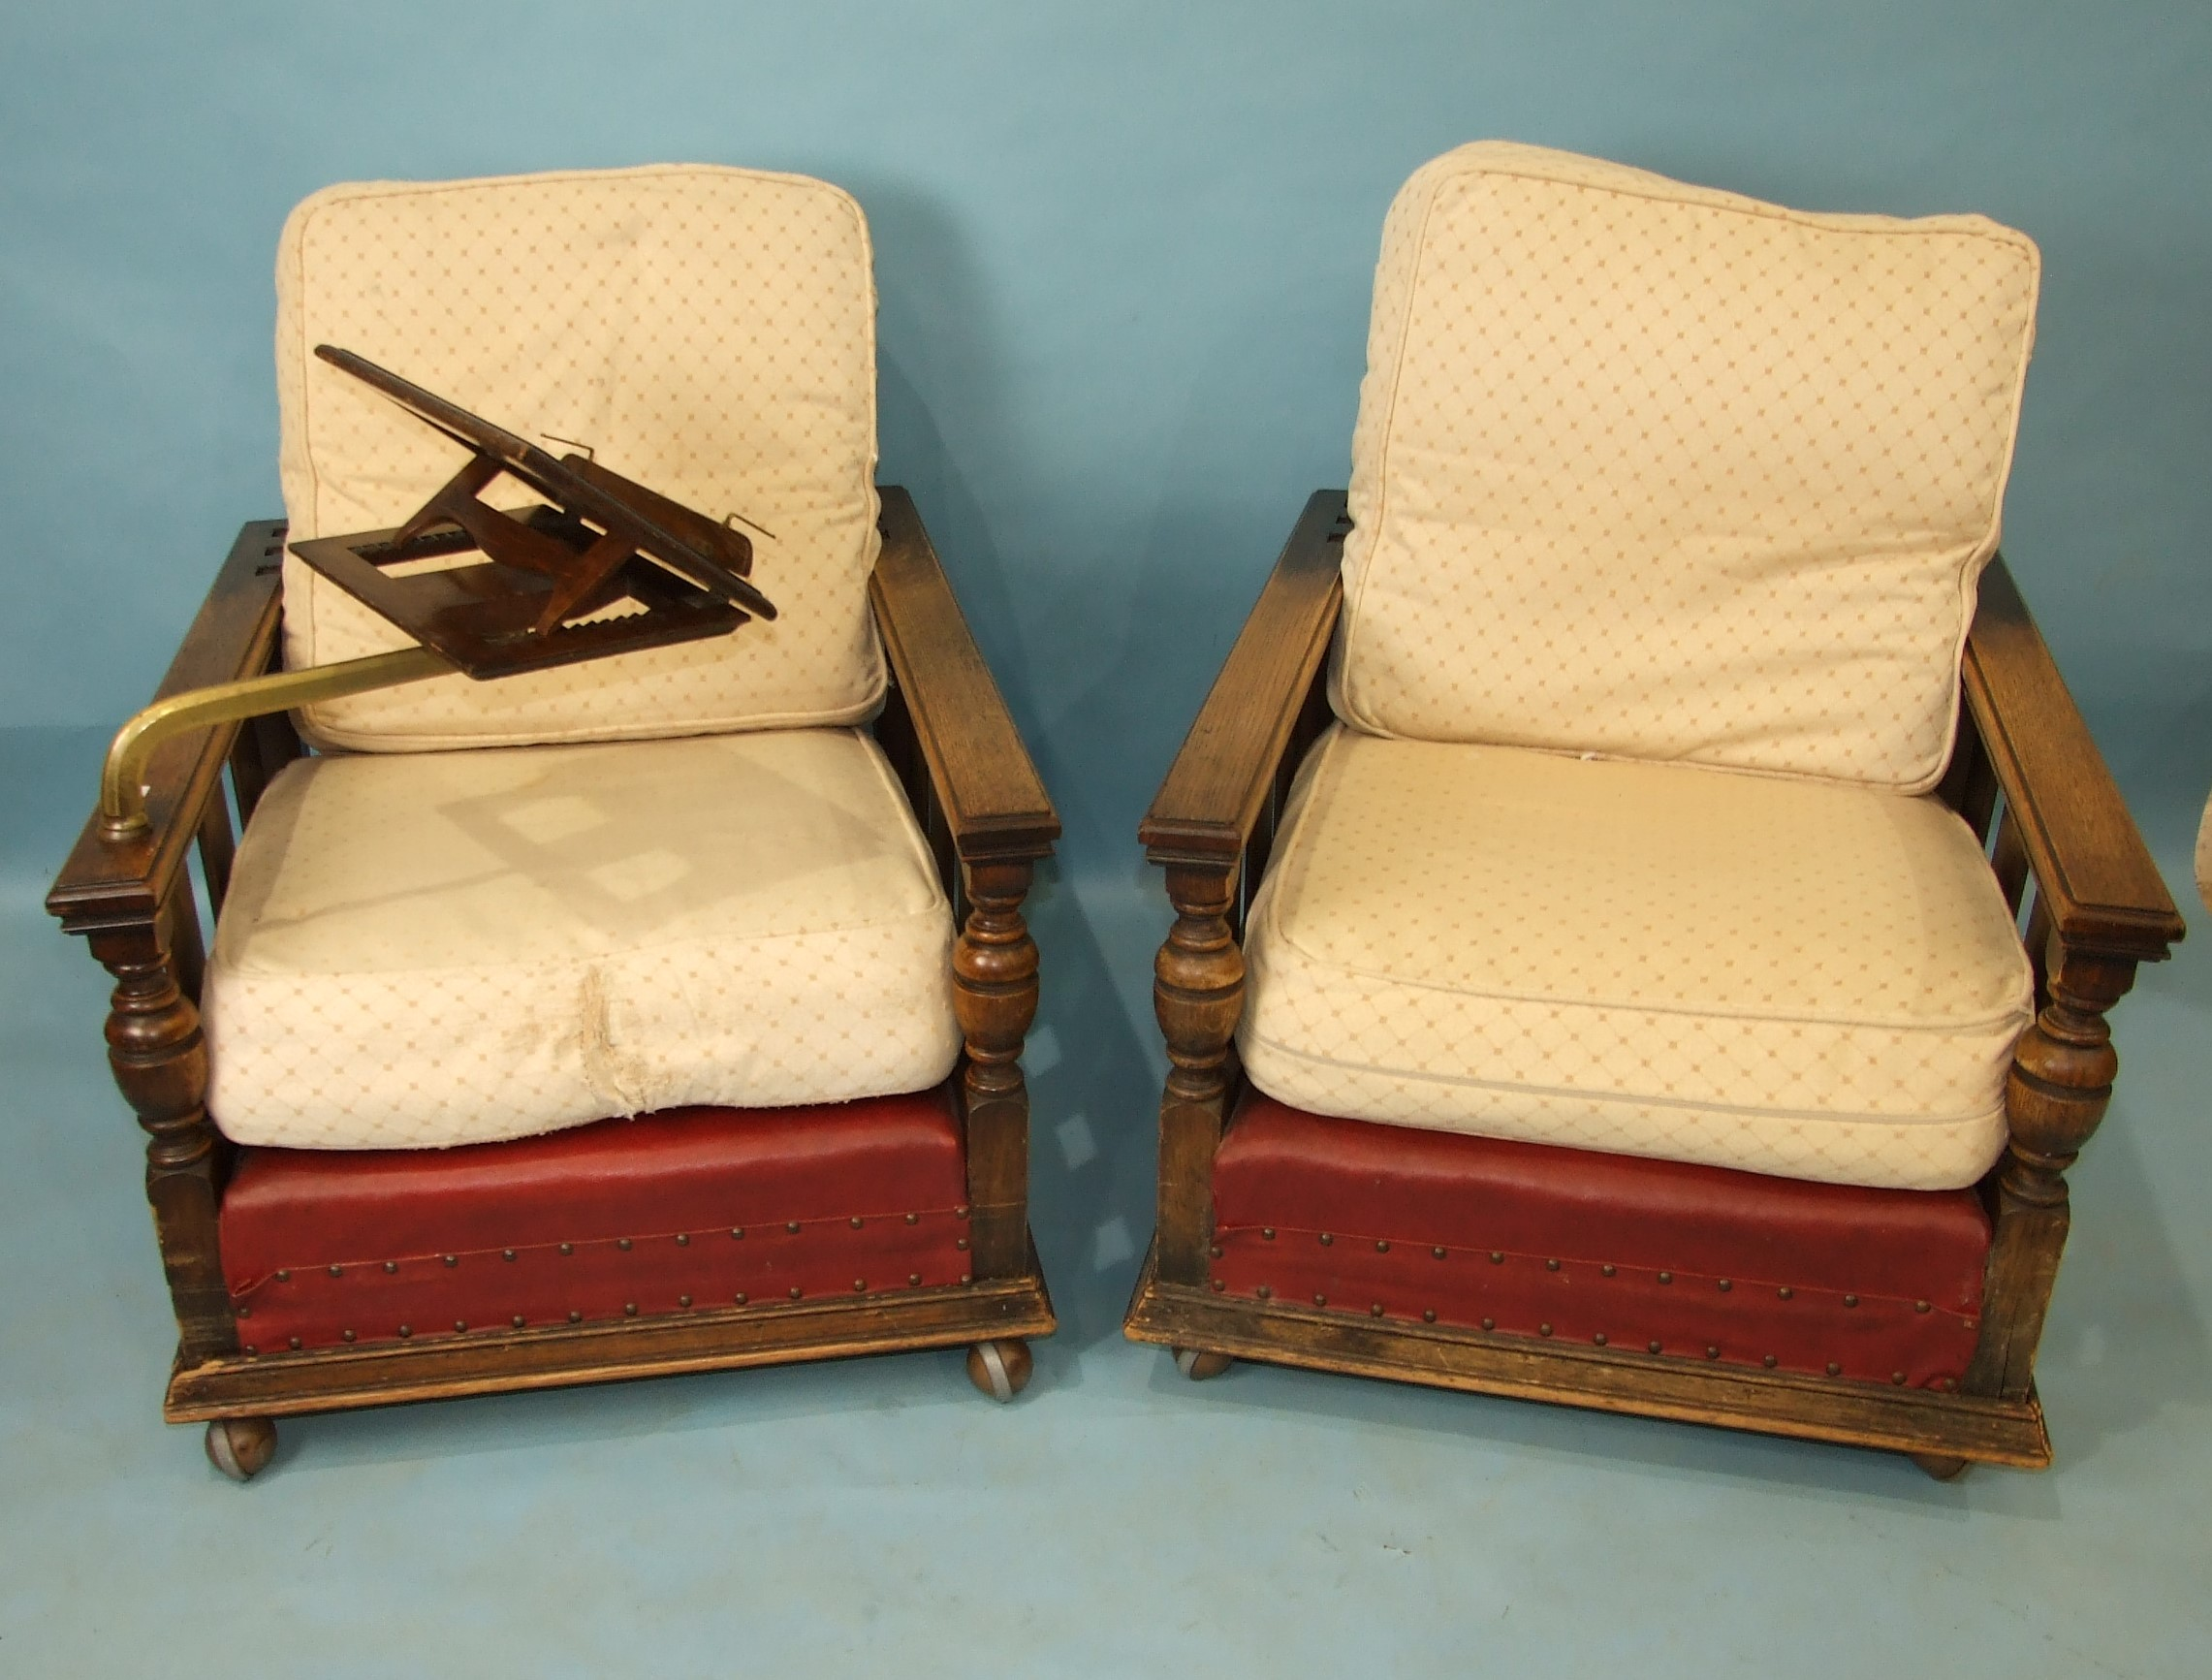 A pair of 1930's oak deep-seated armchairs with adjustable backs, on later castors, one with - Image 2 of 3